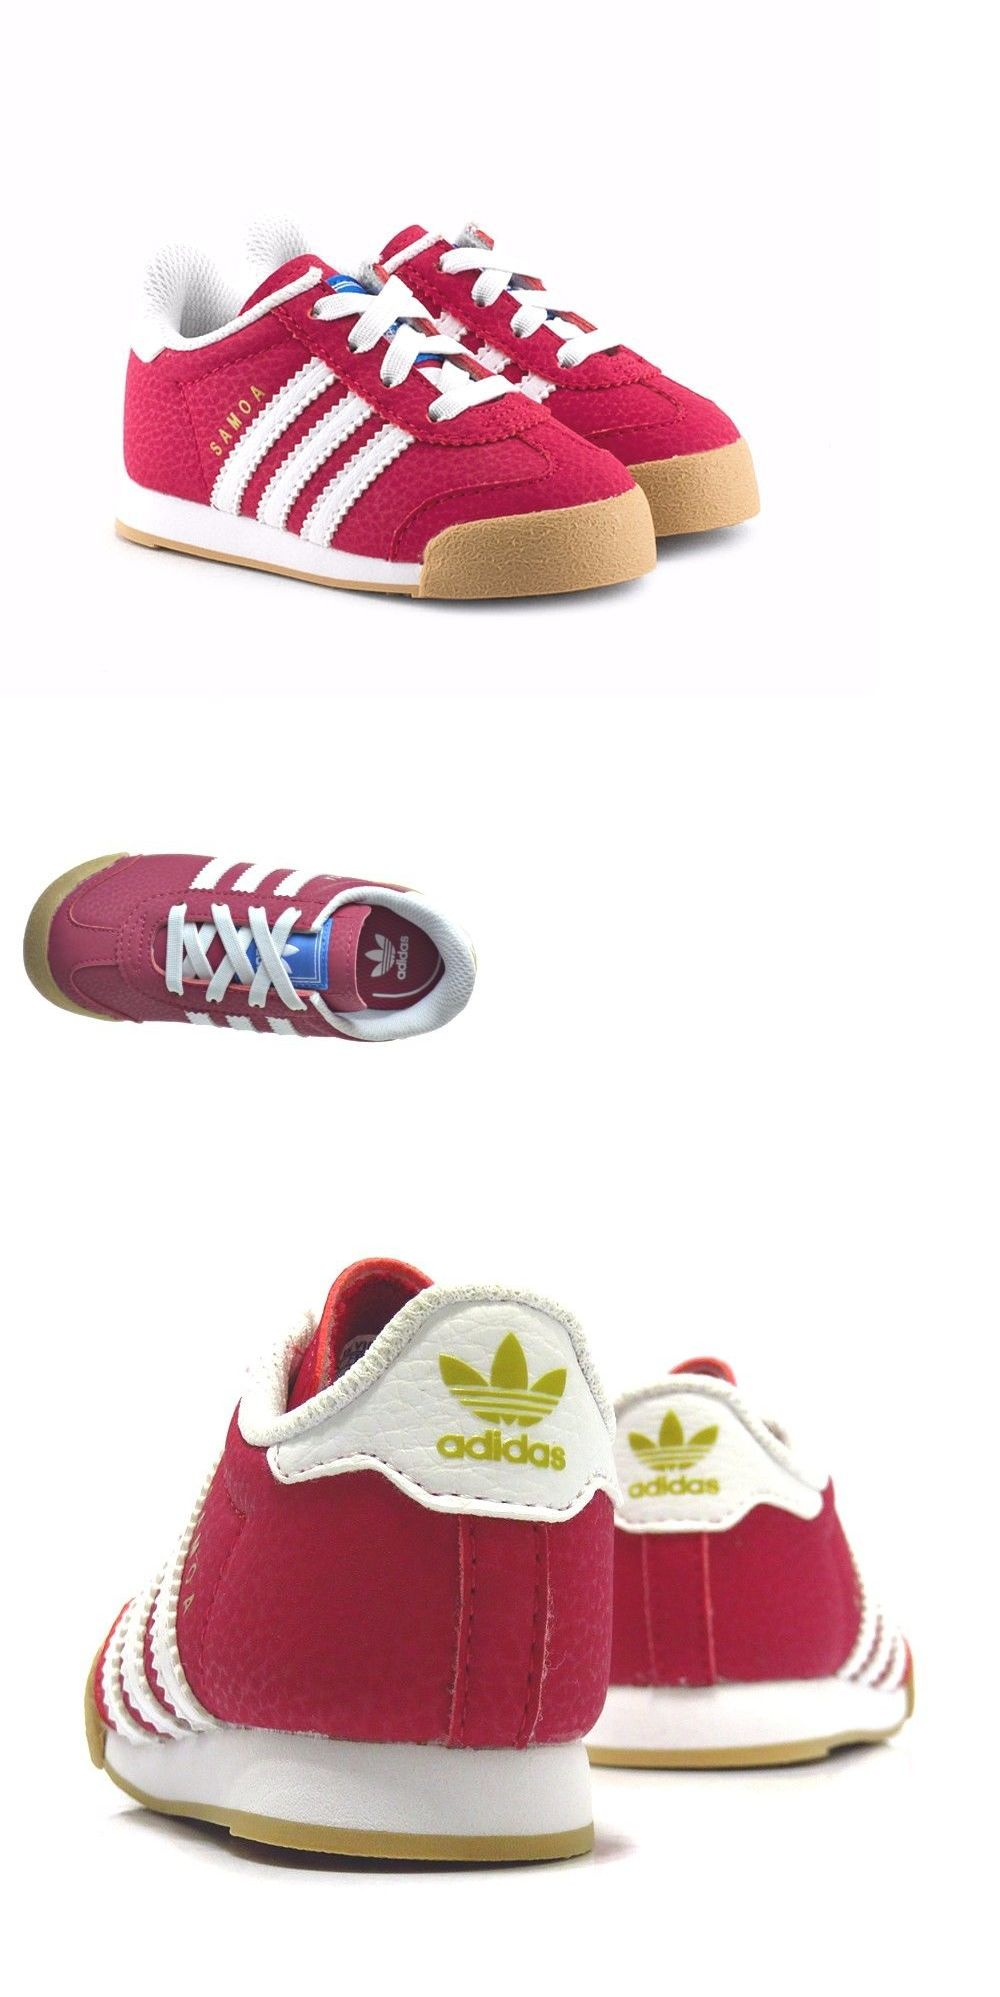 Baby Shoes Adidas Samoa B Red Leather Toddler Kids